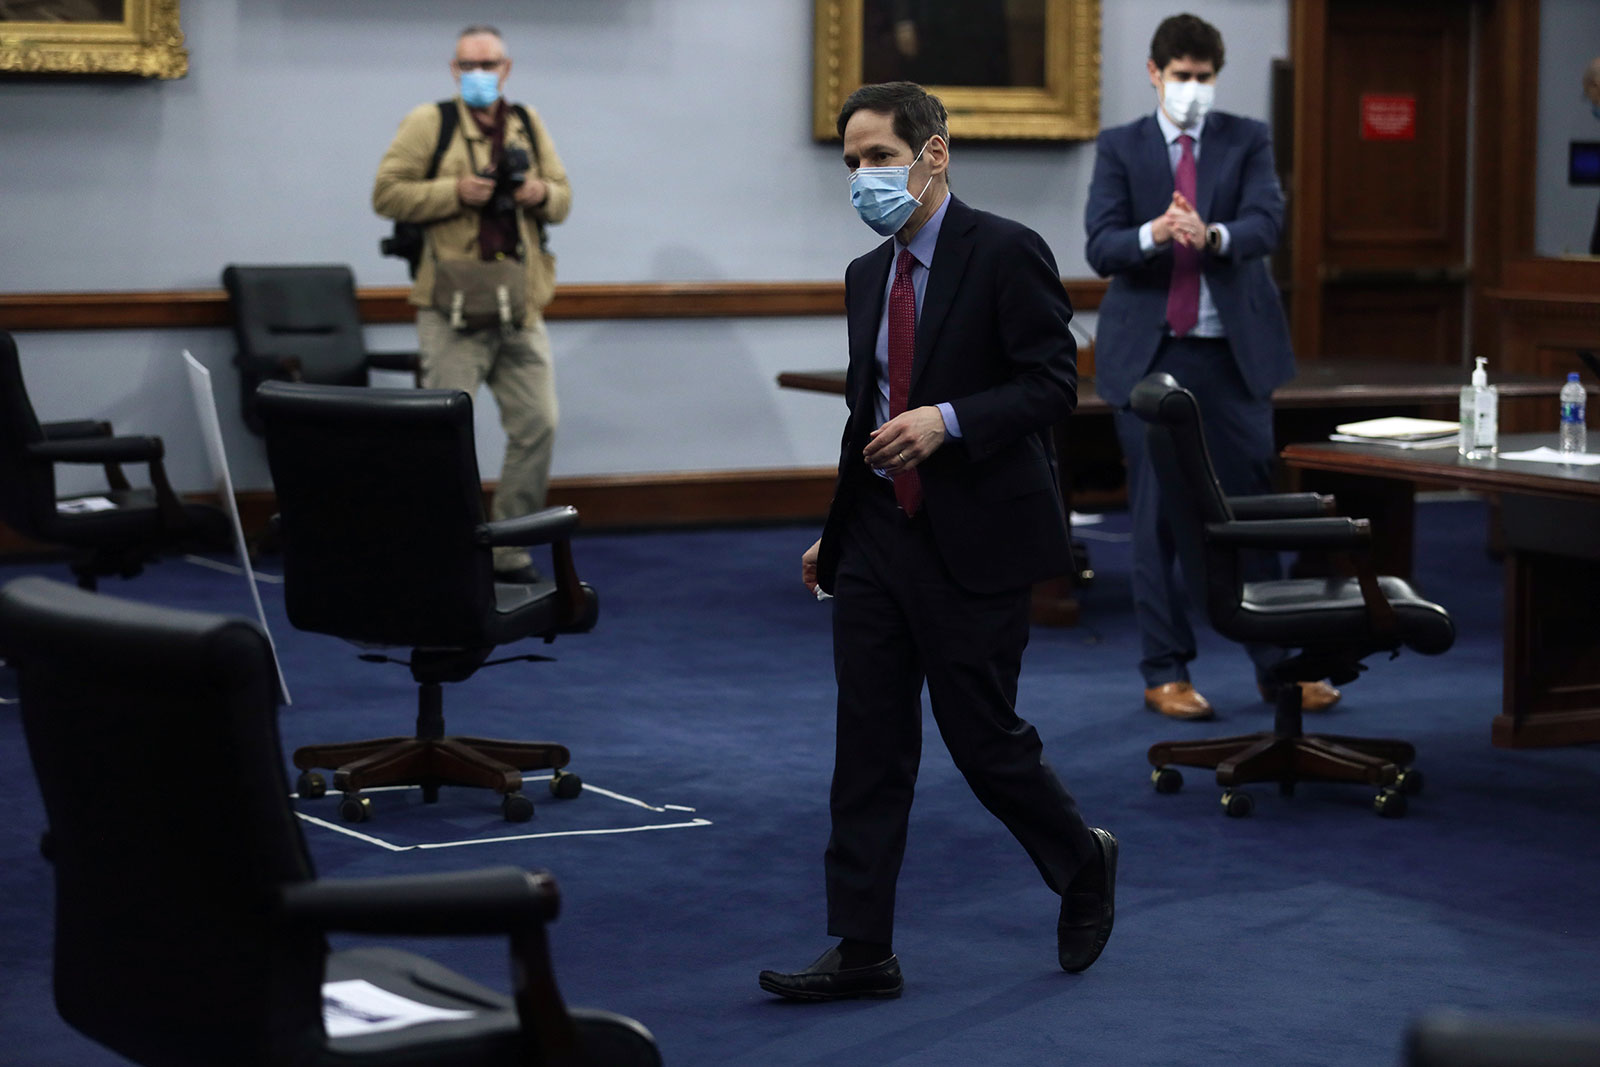 Former CDC DirectorDr. Tom Frieden leaves after testifying at a House subcommittee hearing on Covid-19 in Washington, DC, in May.